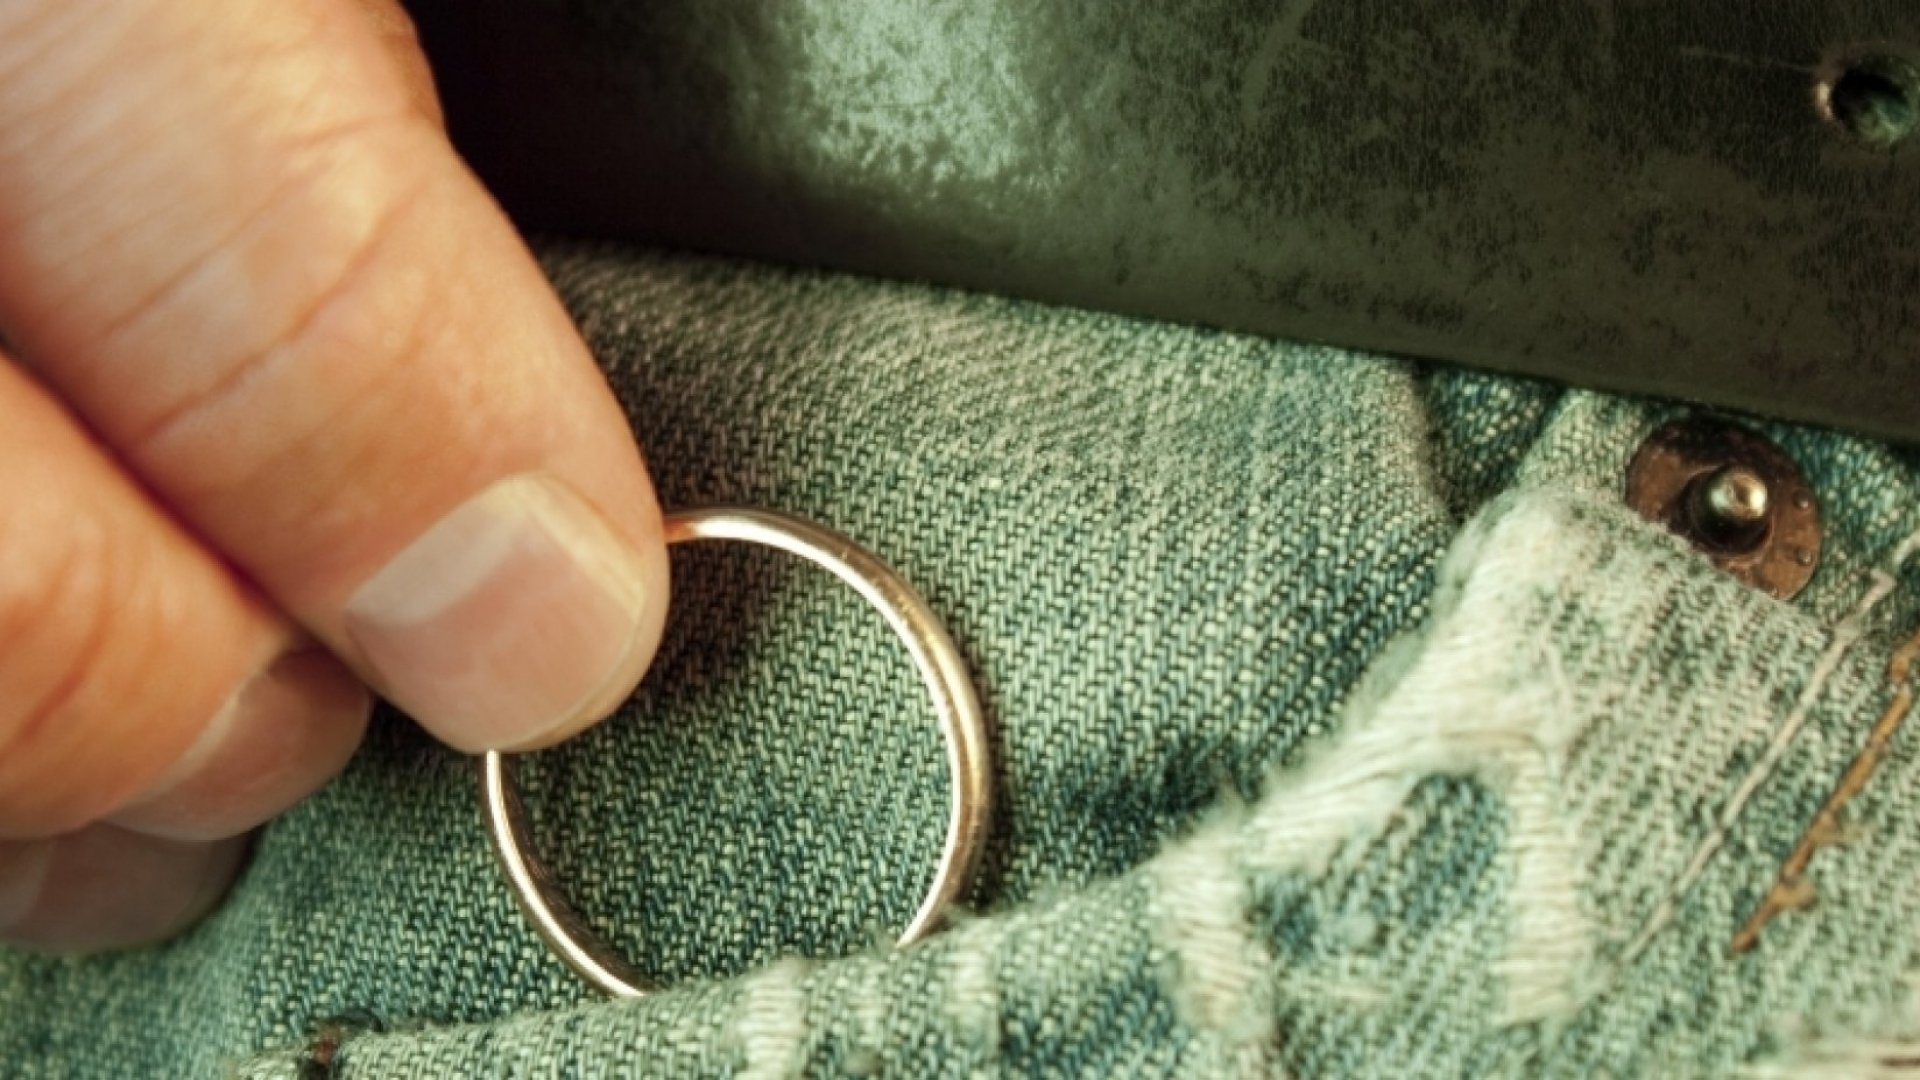 Should You Remove Your Engagement Ring for Job Interviews?